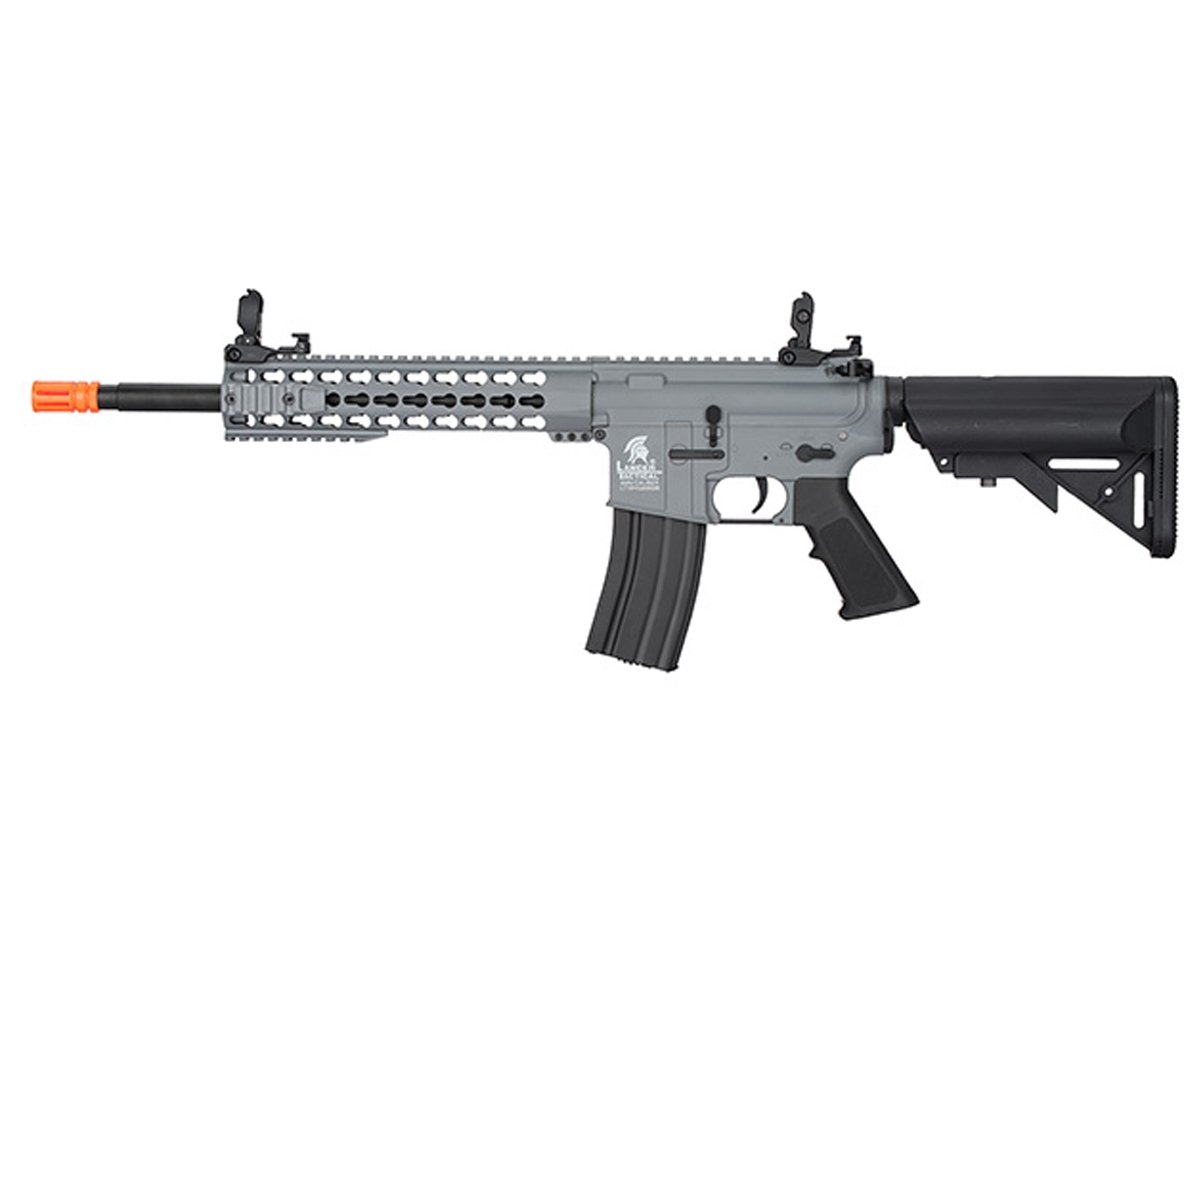 UKARMS Lancer Tactical M4 KEYMOD AEG FIELD Metal Gears Airsoft Gun Rifle w/9.6v Battery & Charger (Grey High Velocity) by UKARMS